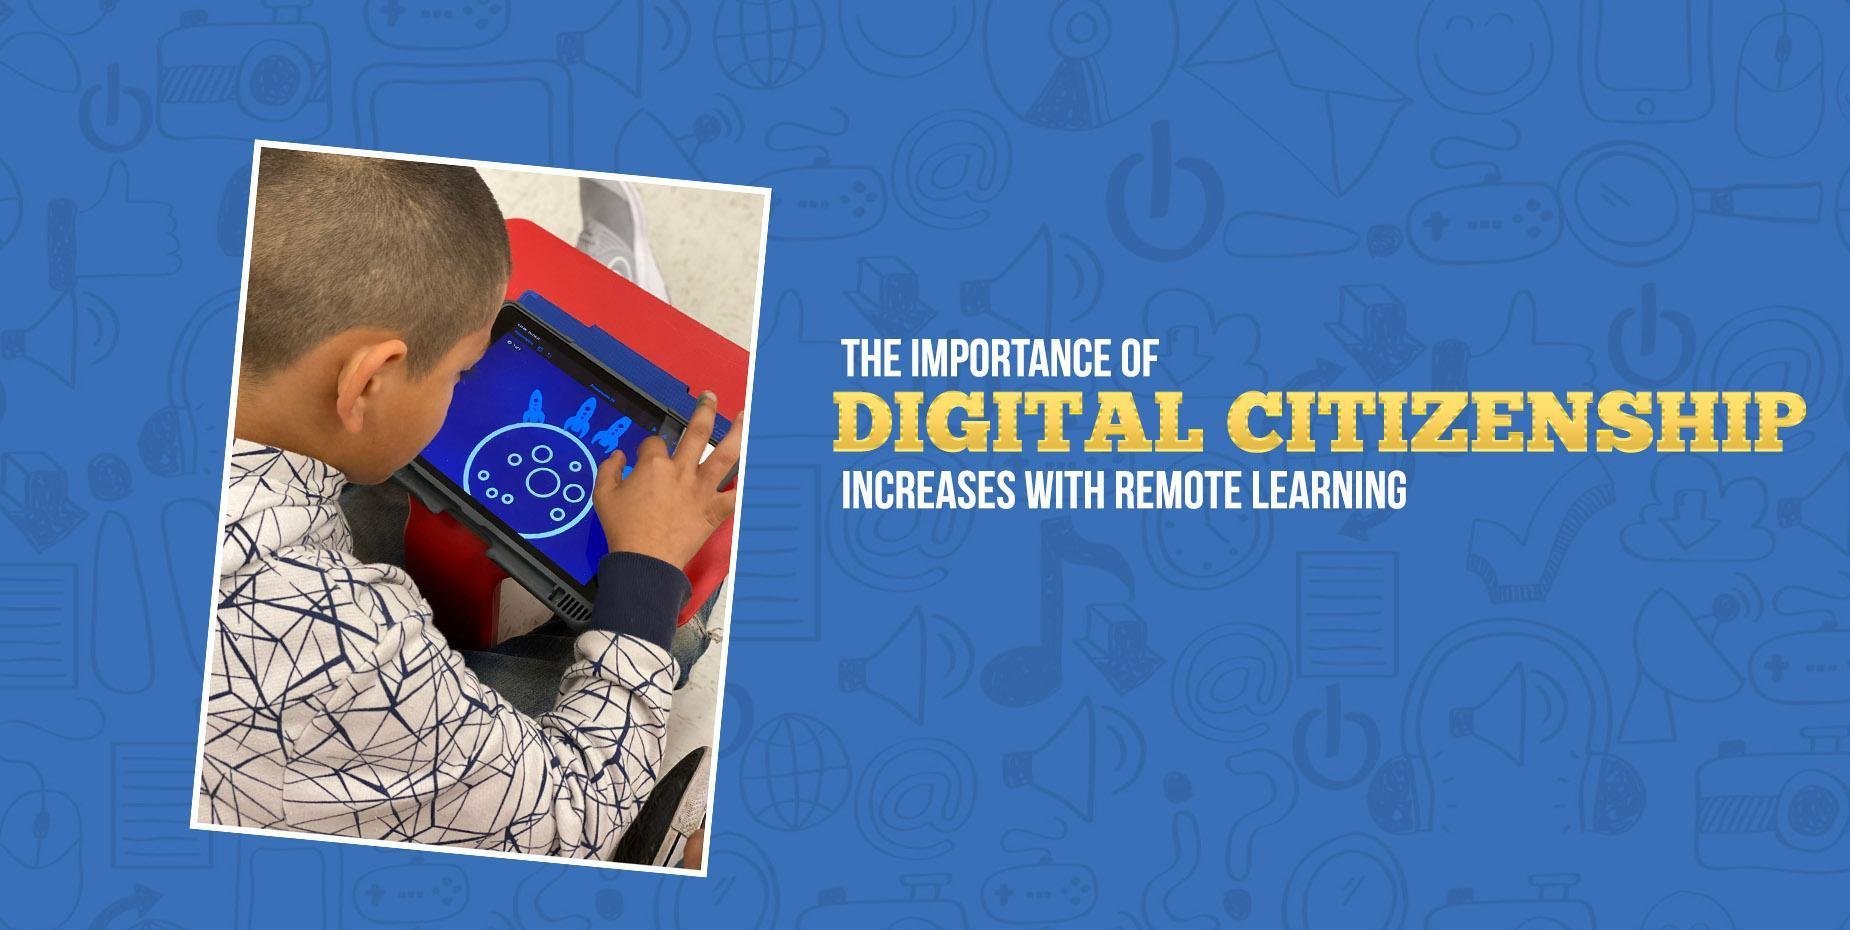 The importance of Digital Citizenship increases with remote learning